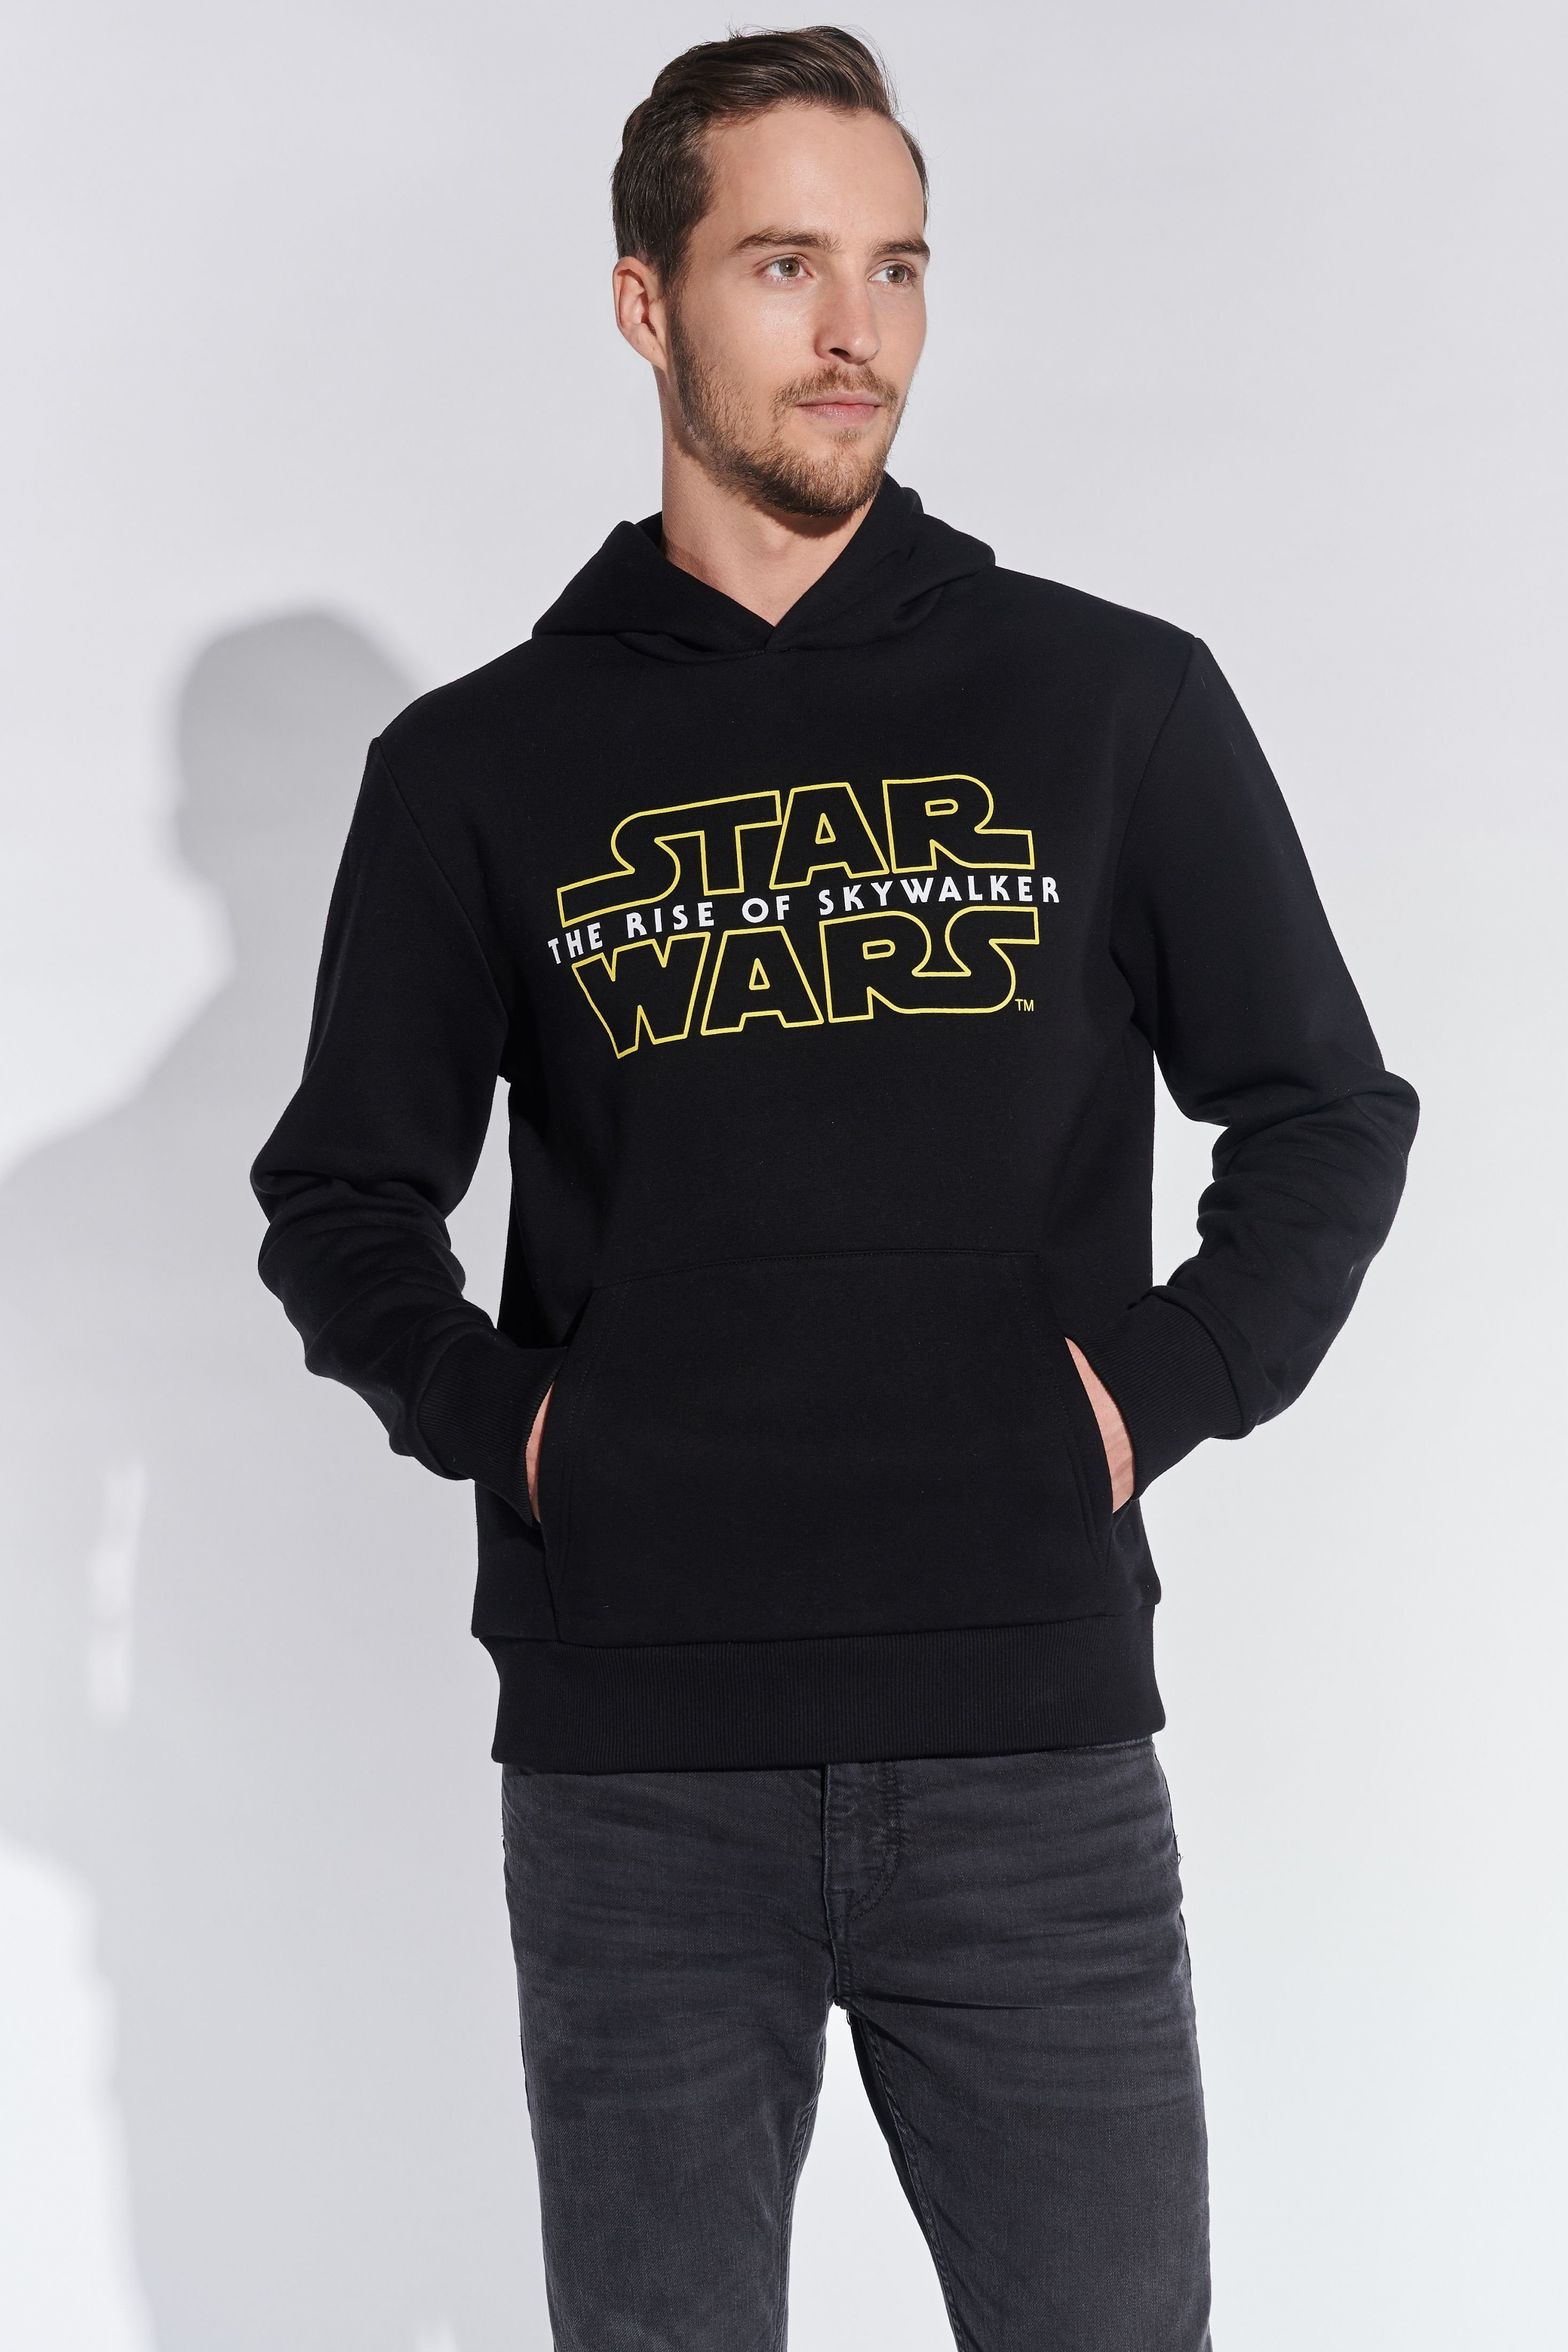 COURSE Hoodie Starwars The Rise of Skywalker | OTTO